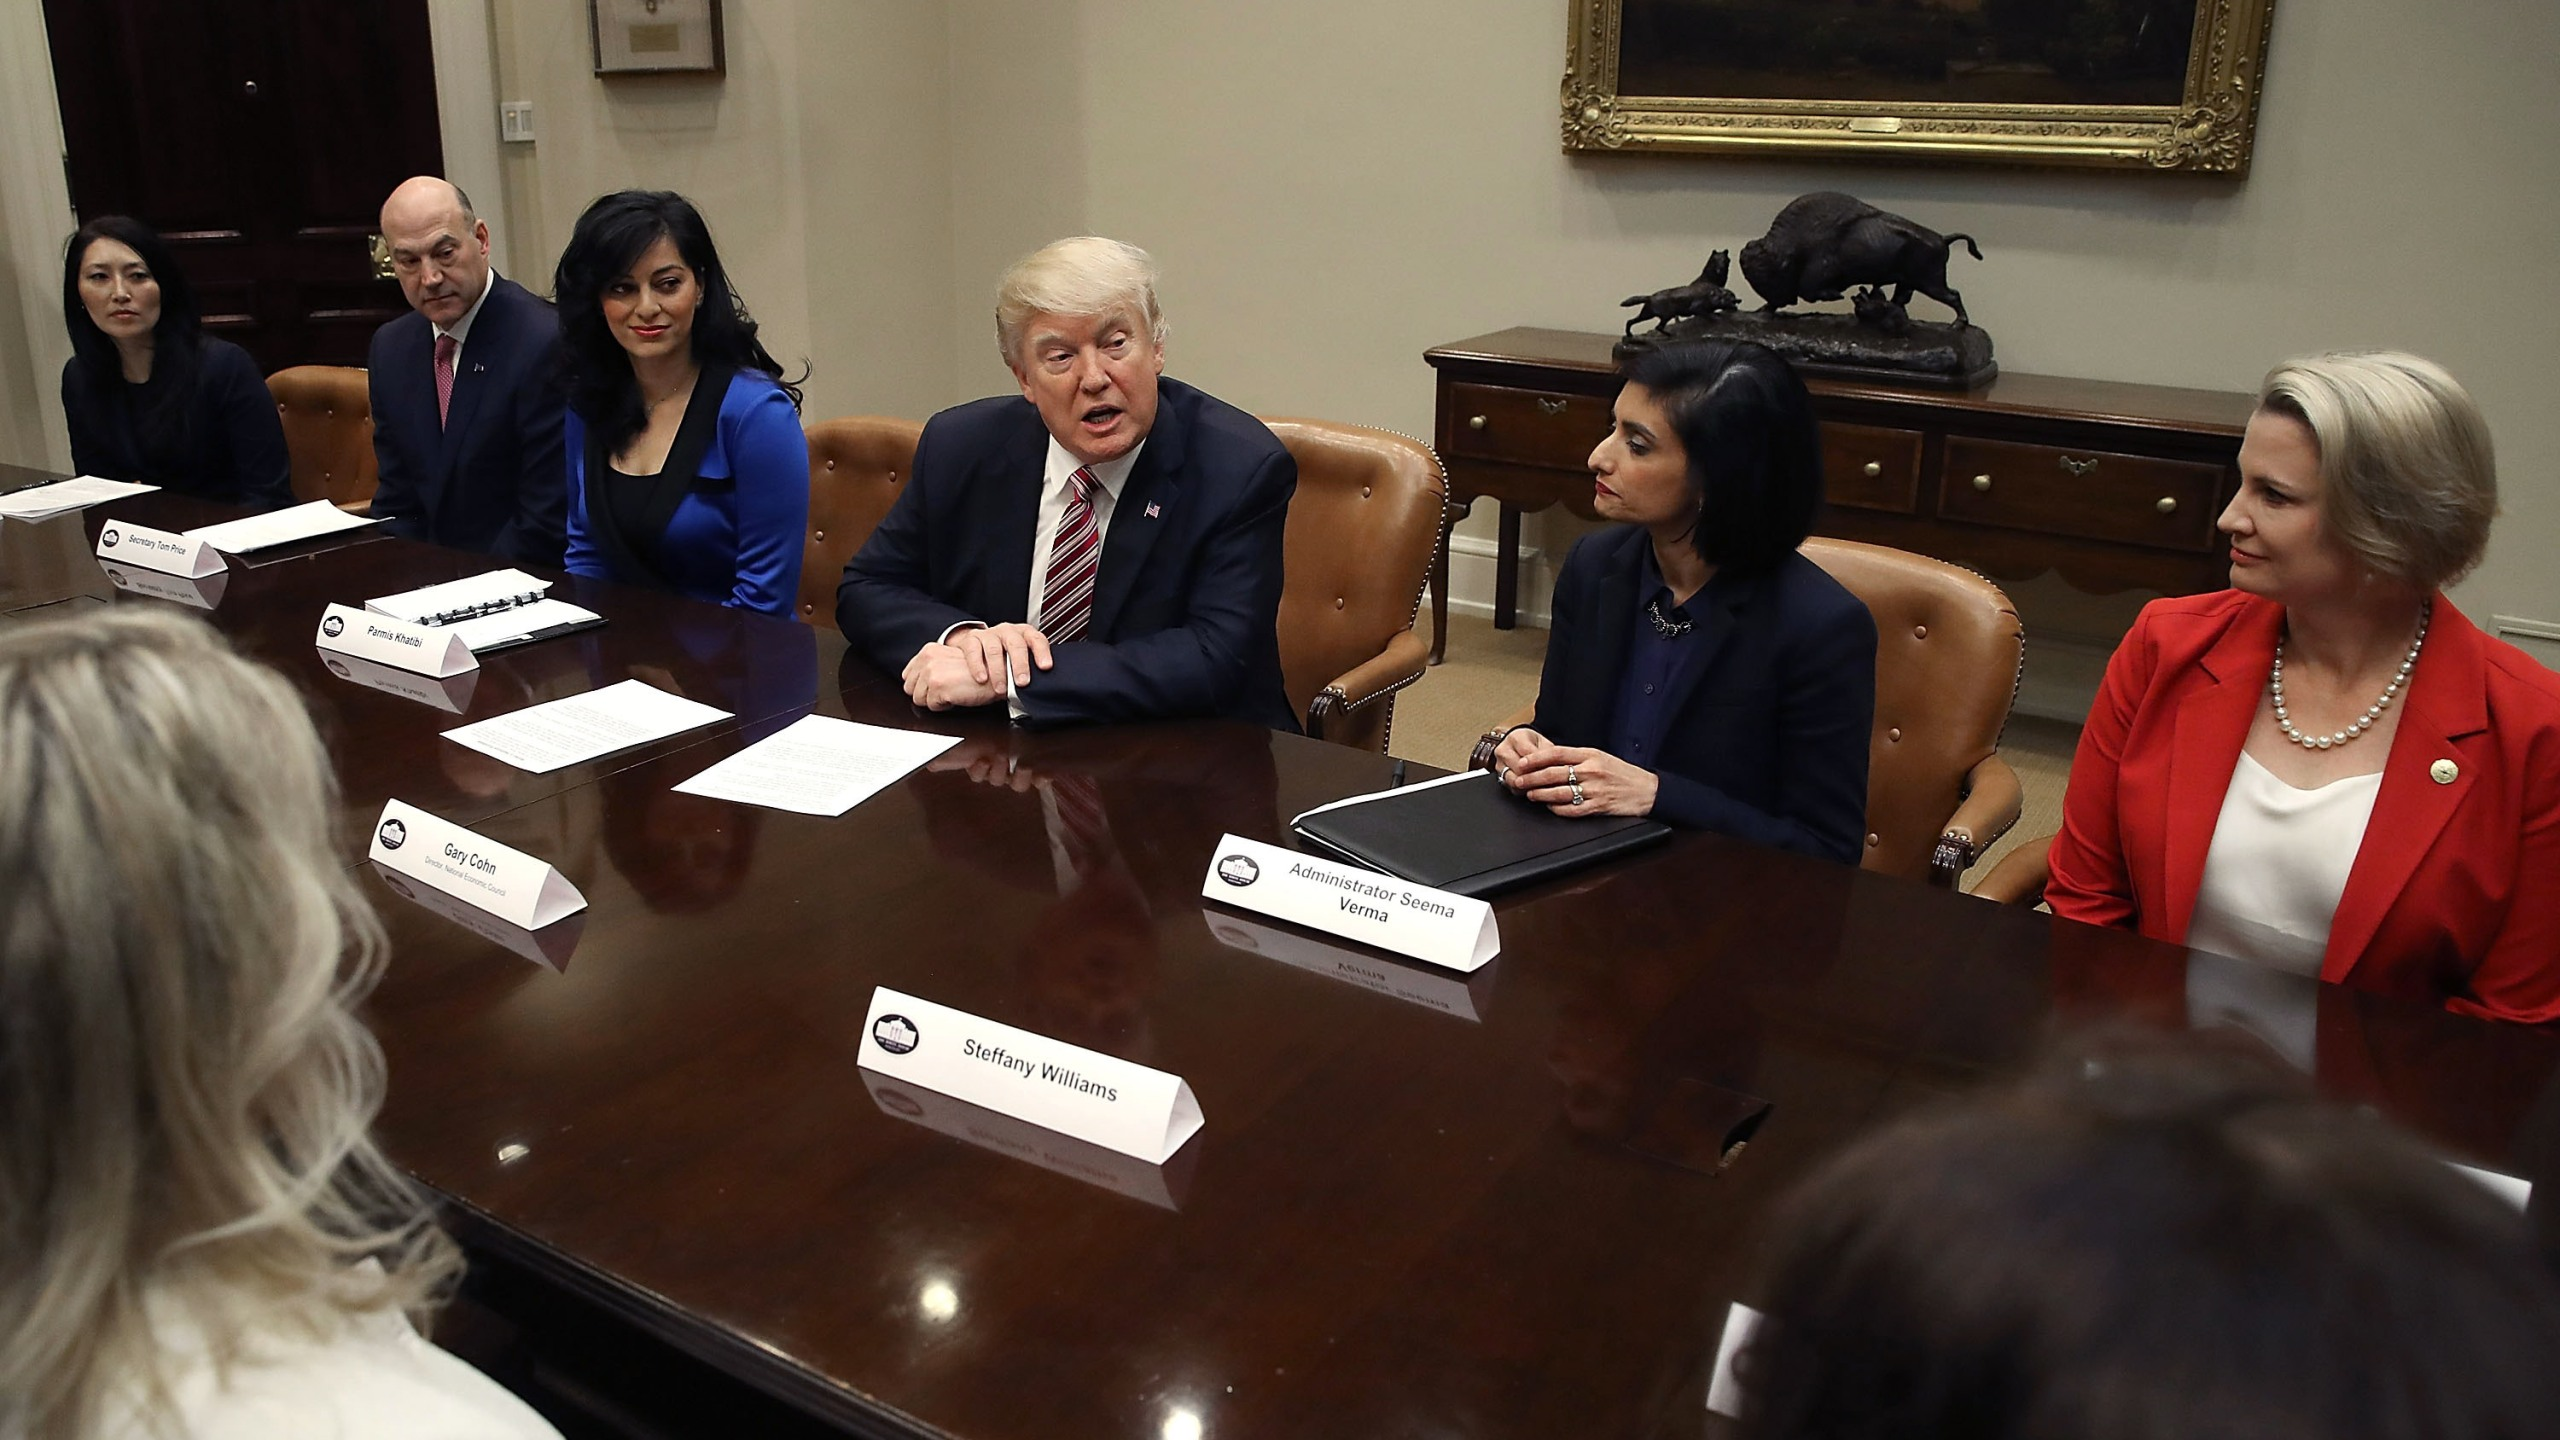 President Donald Trump speaks to participants of a women in healthcare panel hosted by Centers for Medicare and Medicaid Services head Seema Vermain, second from right, in the Roosevelt Room at the White House, March 22, 2017. (Credit: Mark Wilson / Getty Images)